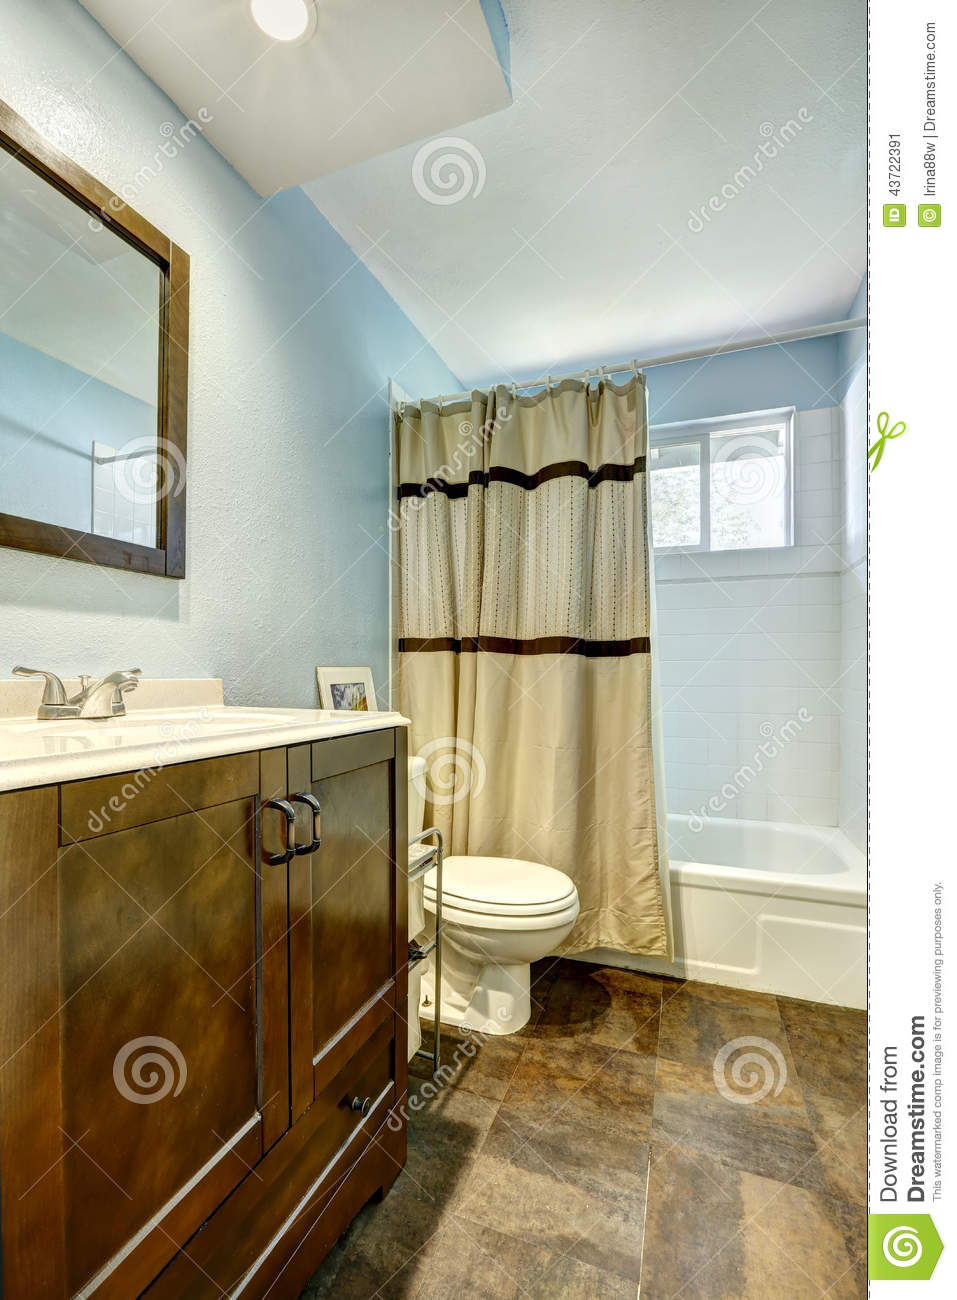 Bathroom with brown tile floor and light blue walls stock Bathroom colors blue and brown